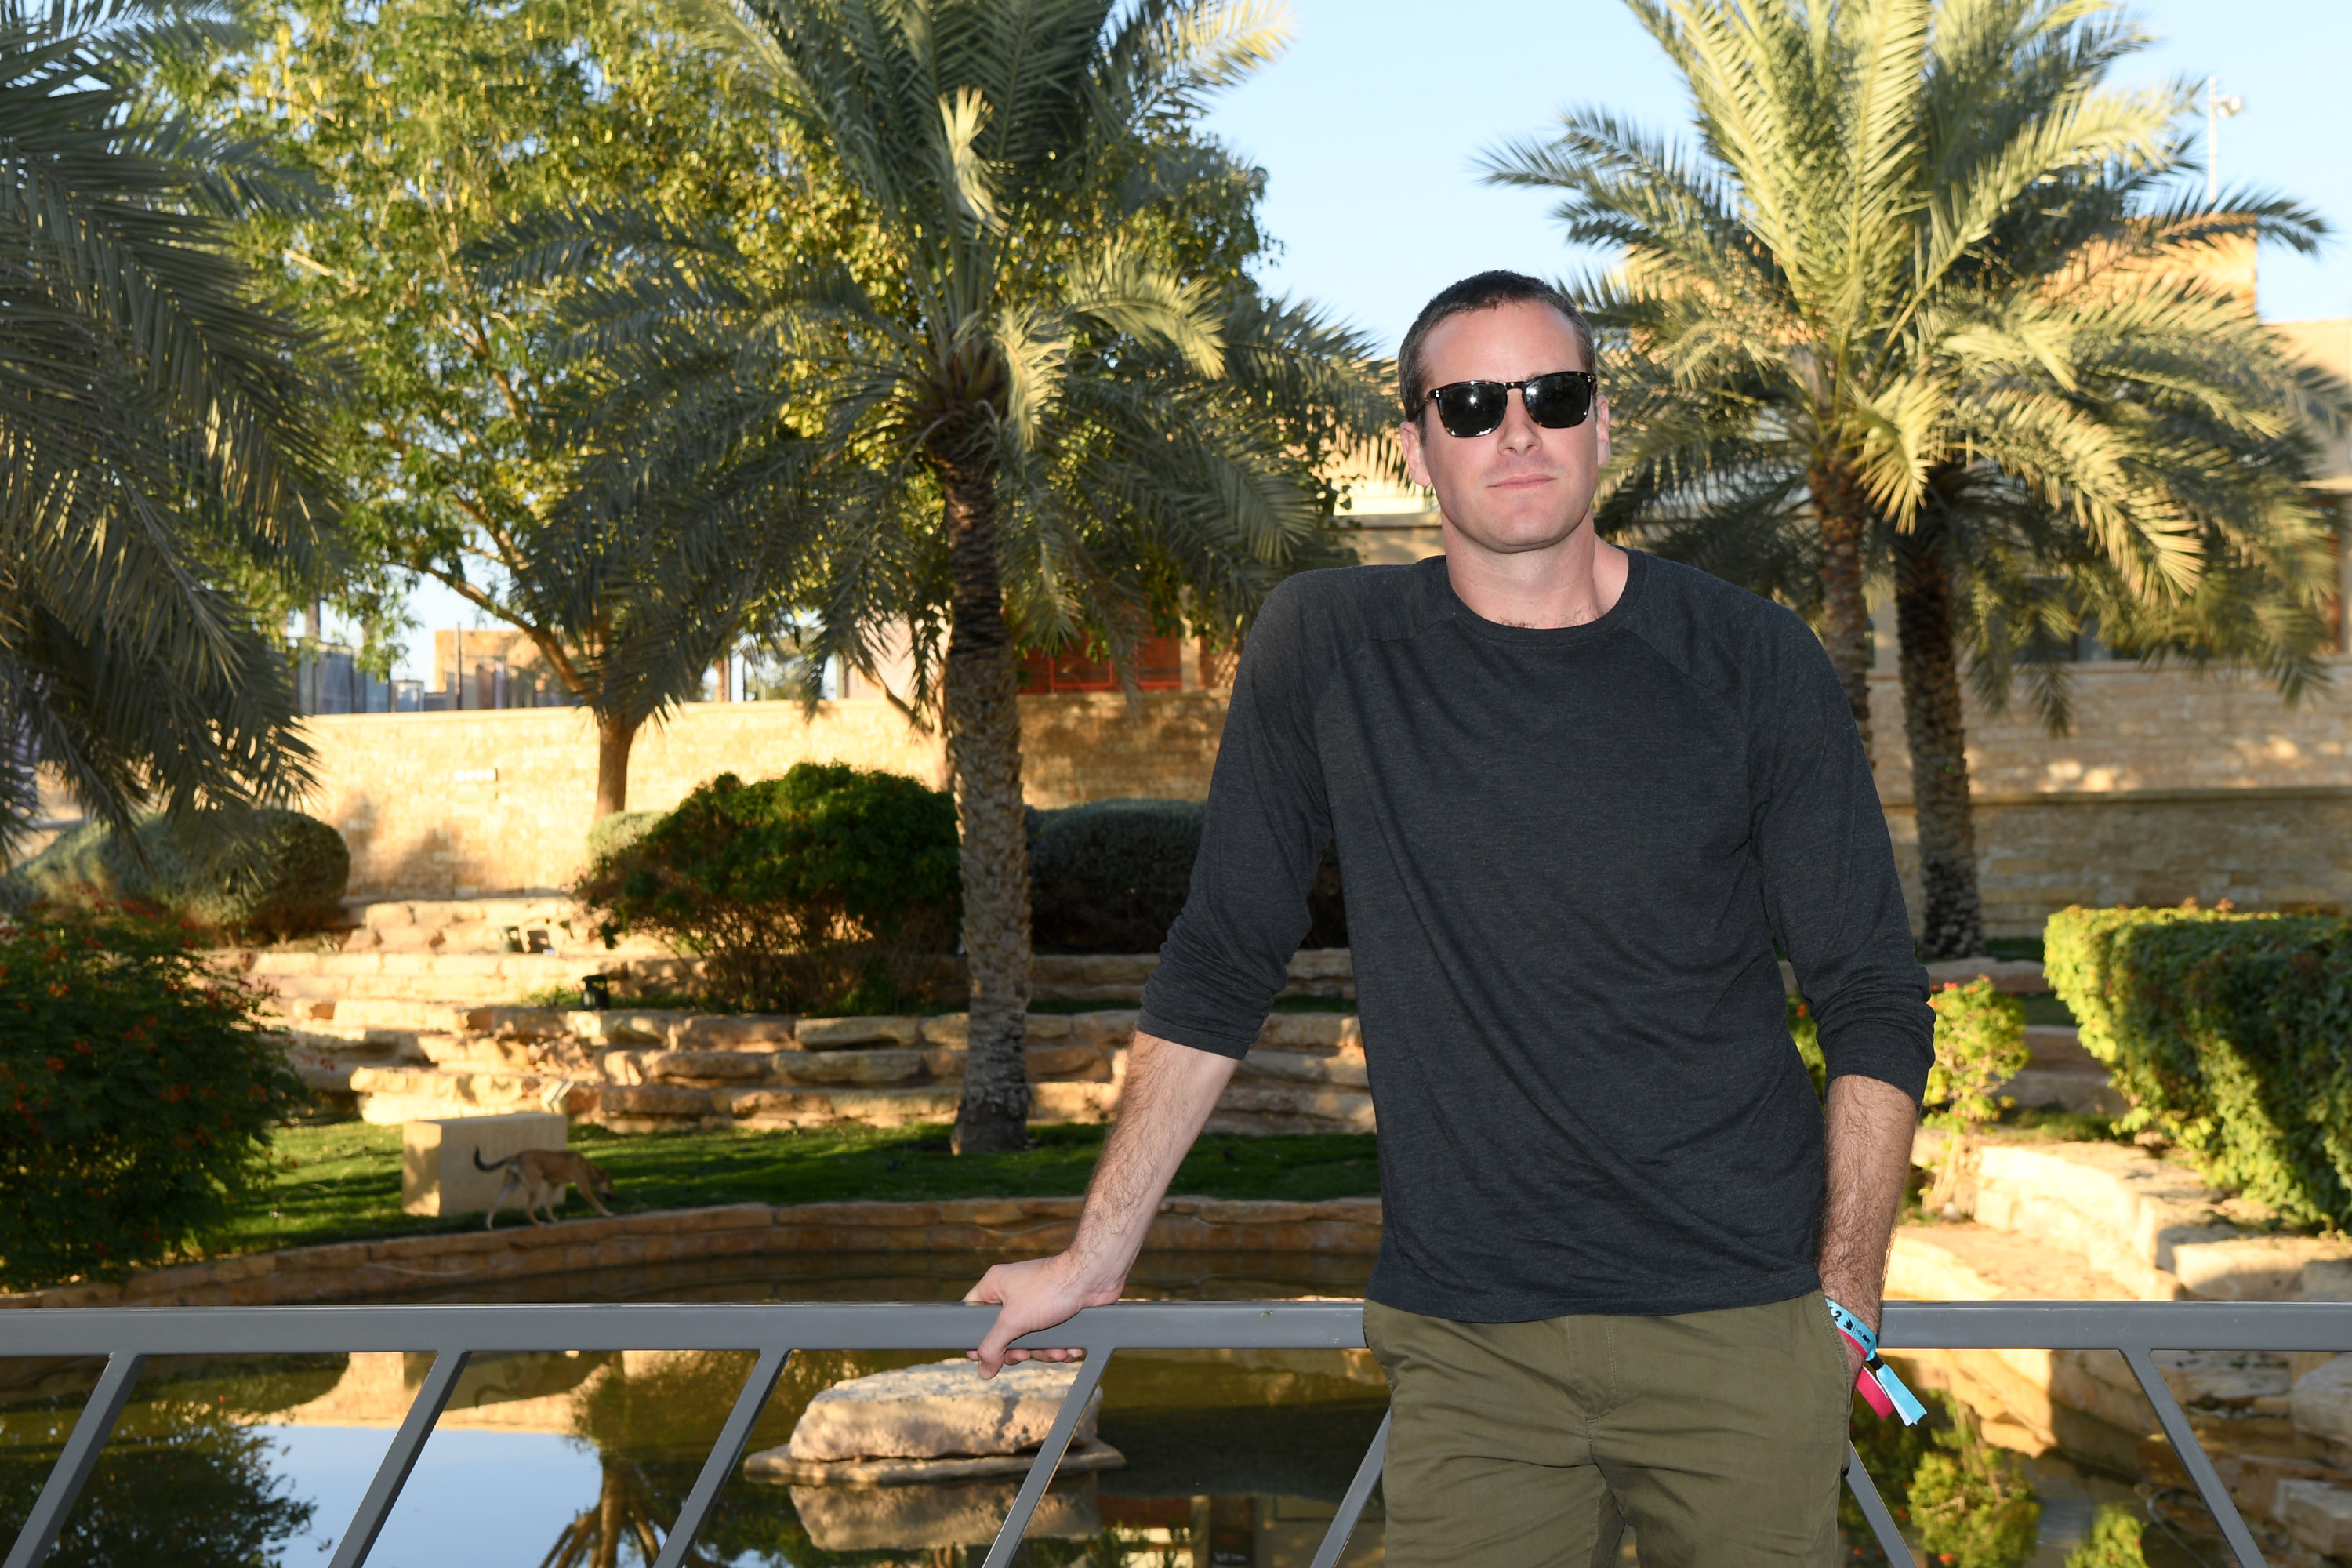 Armie Hammer wears sunglasses, a gray long-sleeve shirt, and dark green pants at the MDL Beast Festival Lunch in Saudi Arabia